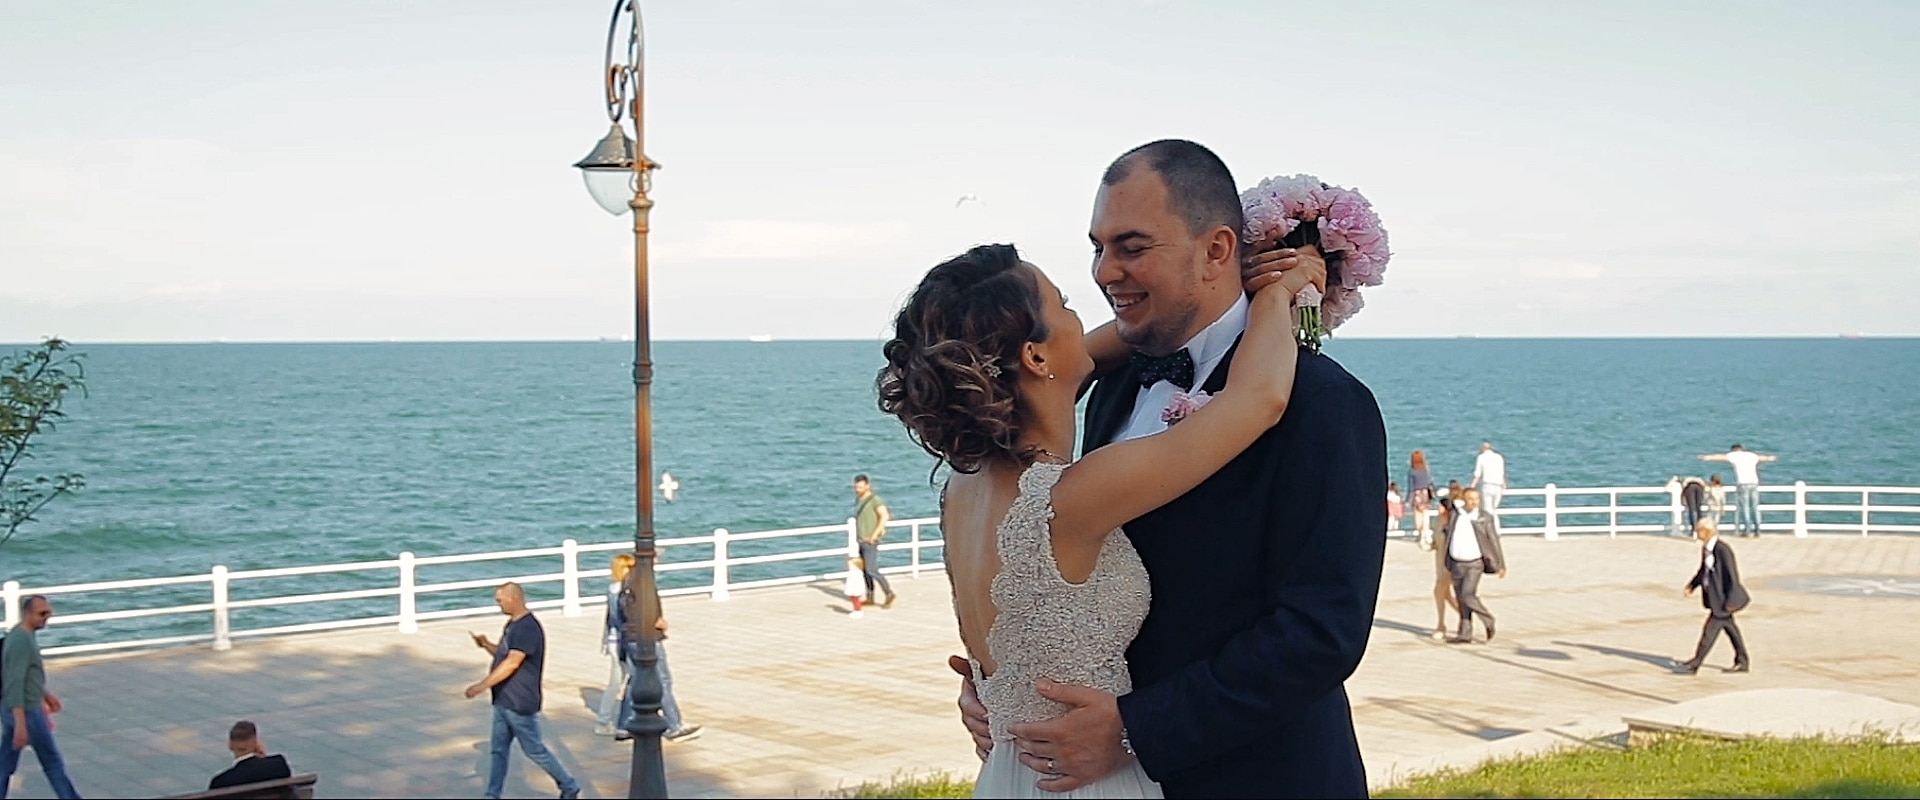 Shooting with the bride and groom during a coastal wedding